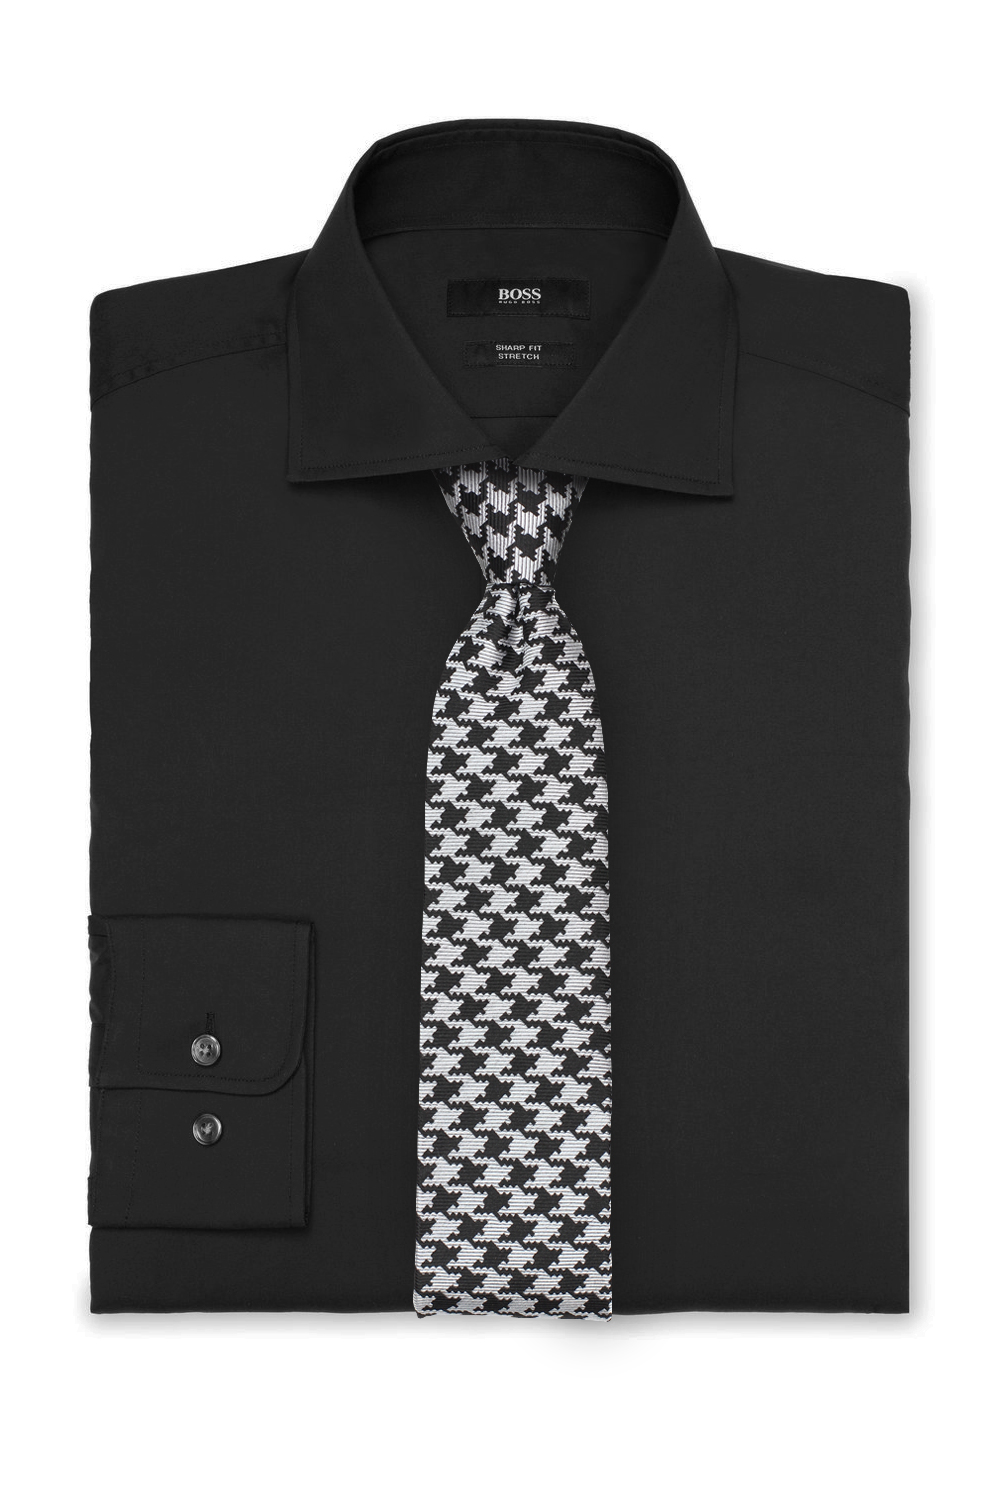 Houndstooth Check Tie and Black Shirt